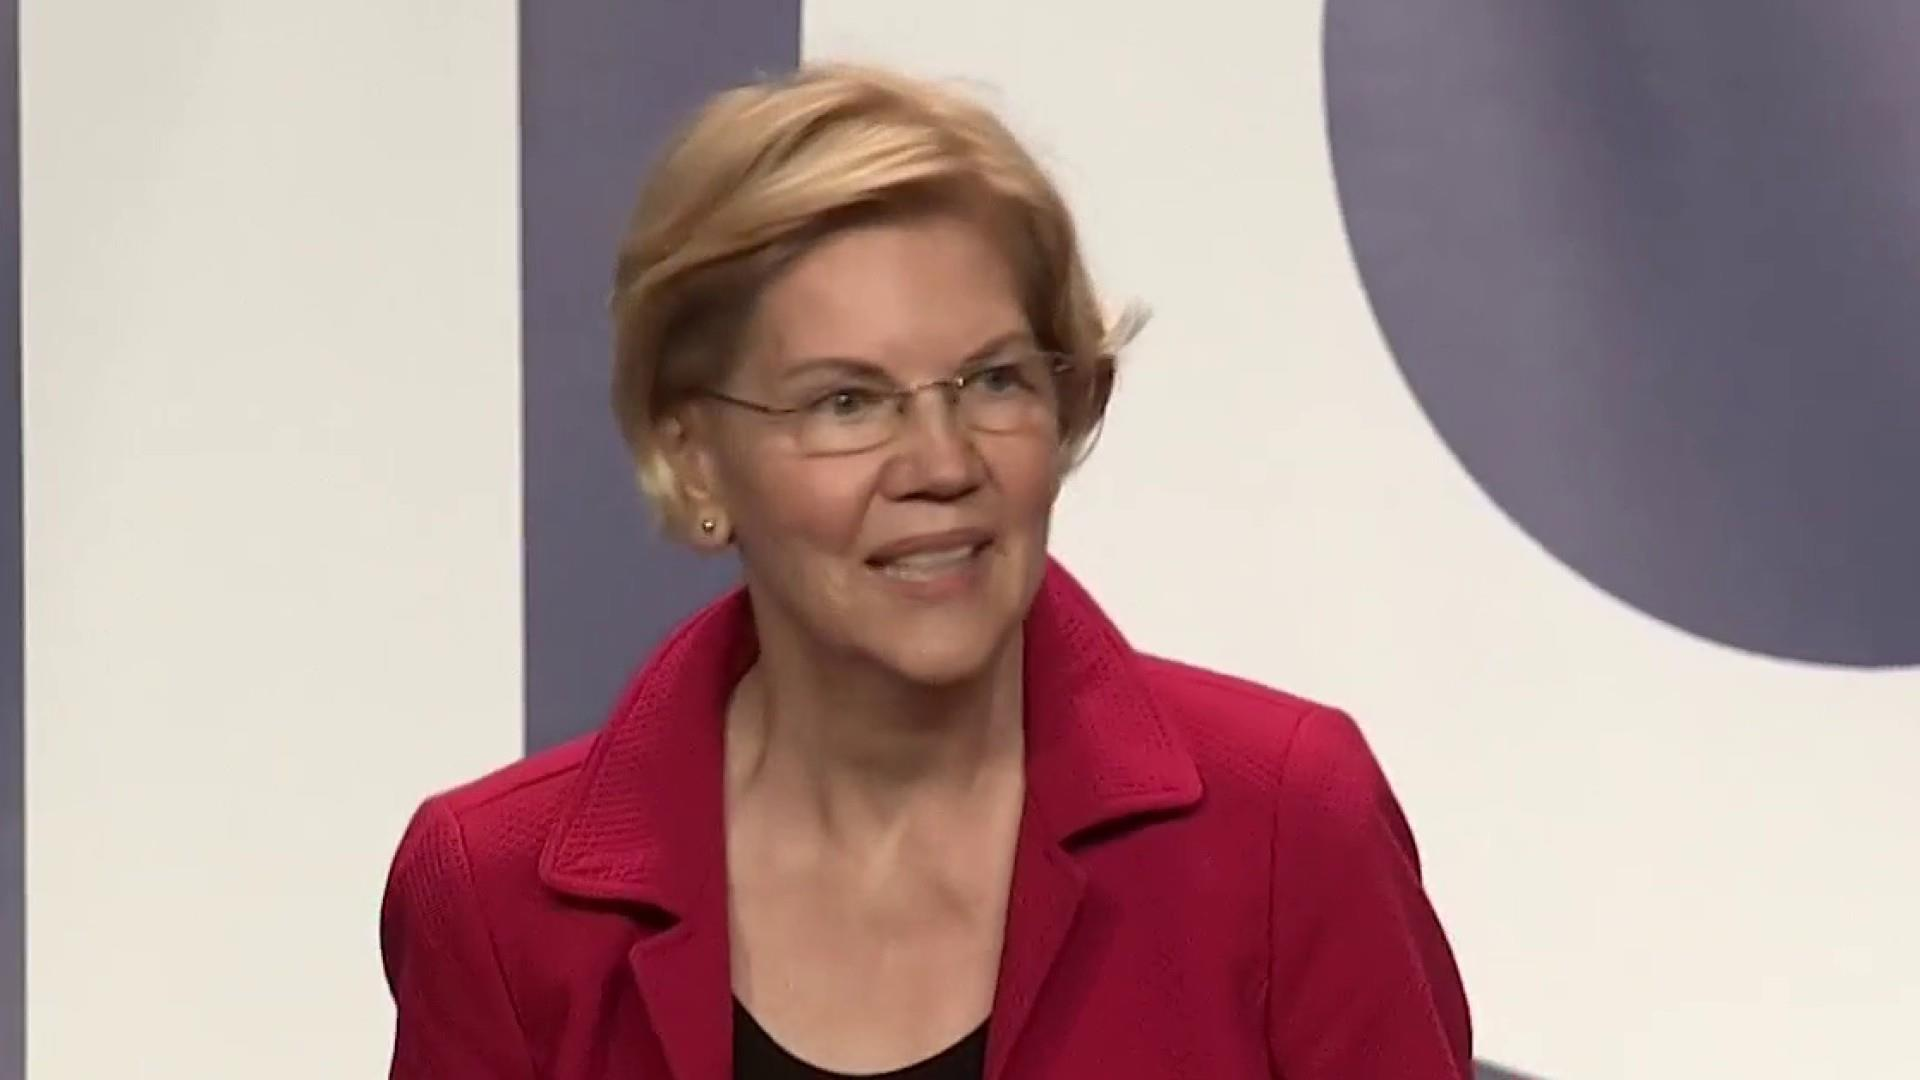 Warren rises in the polls ahead of first Democratic debate